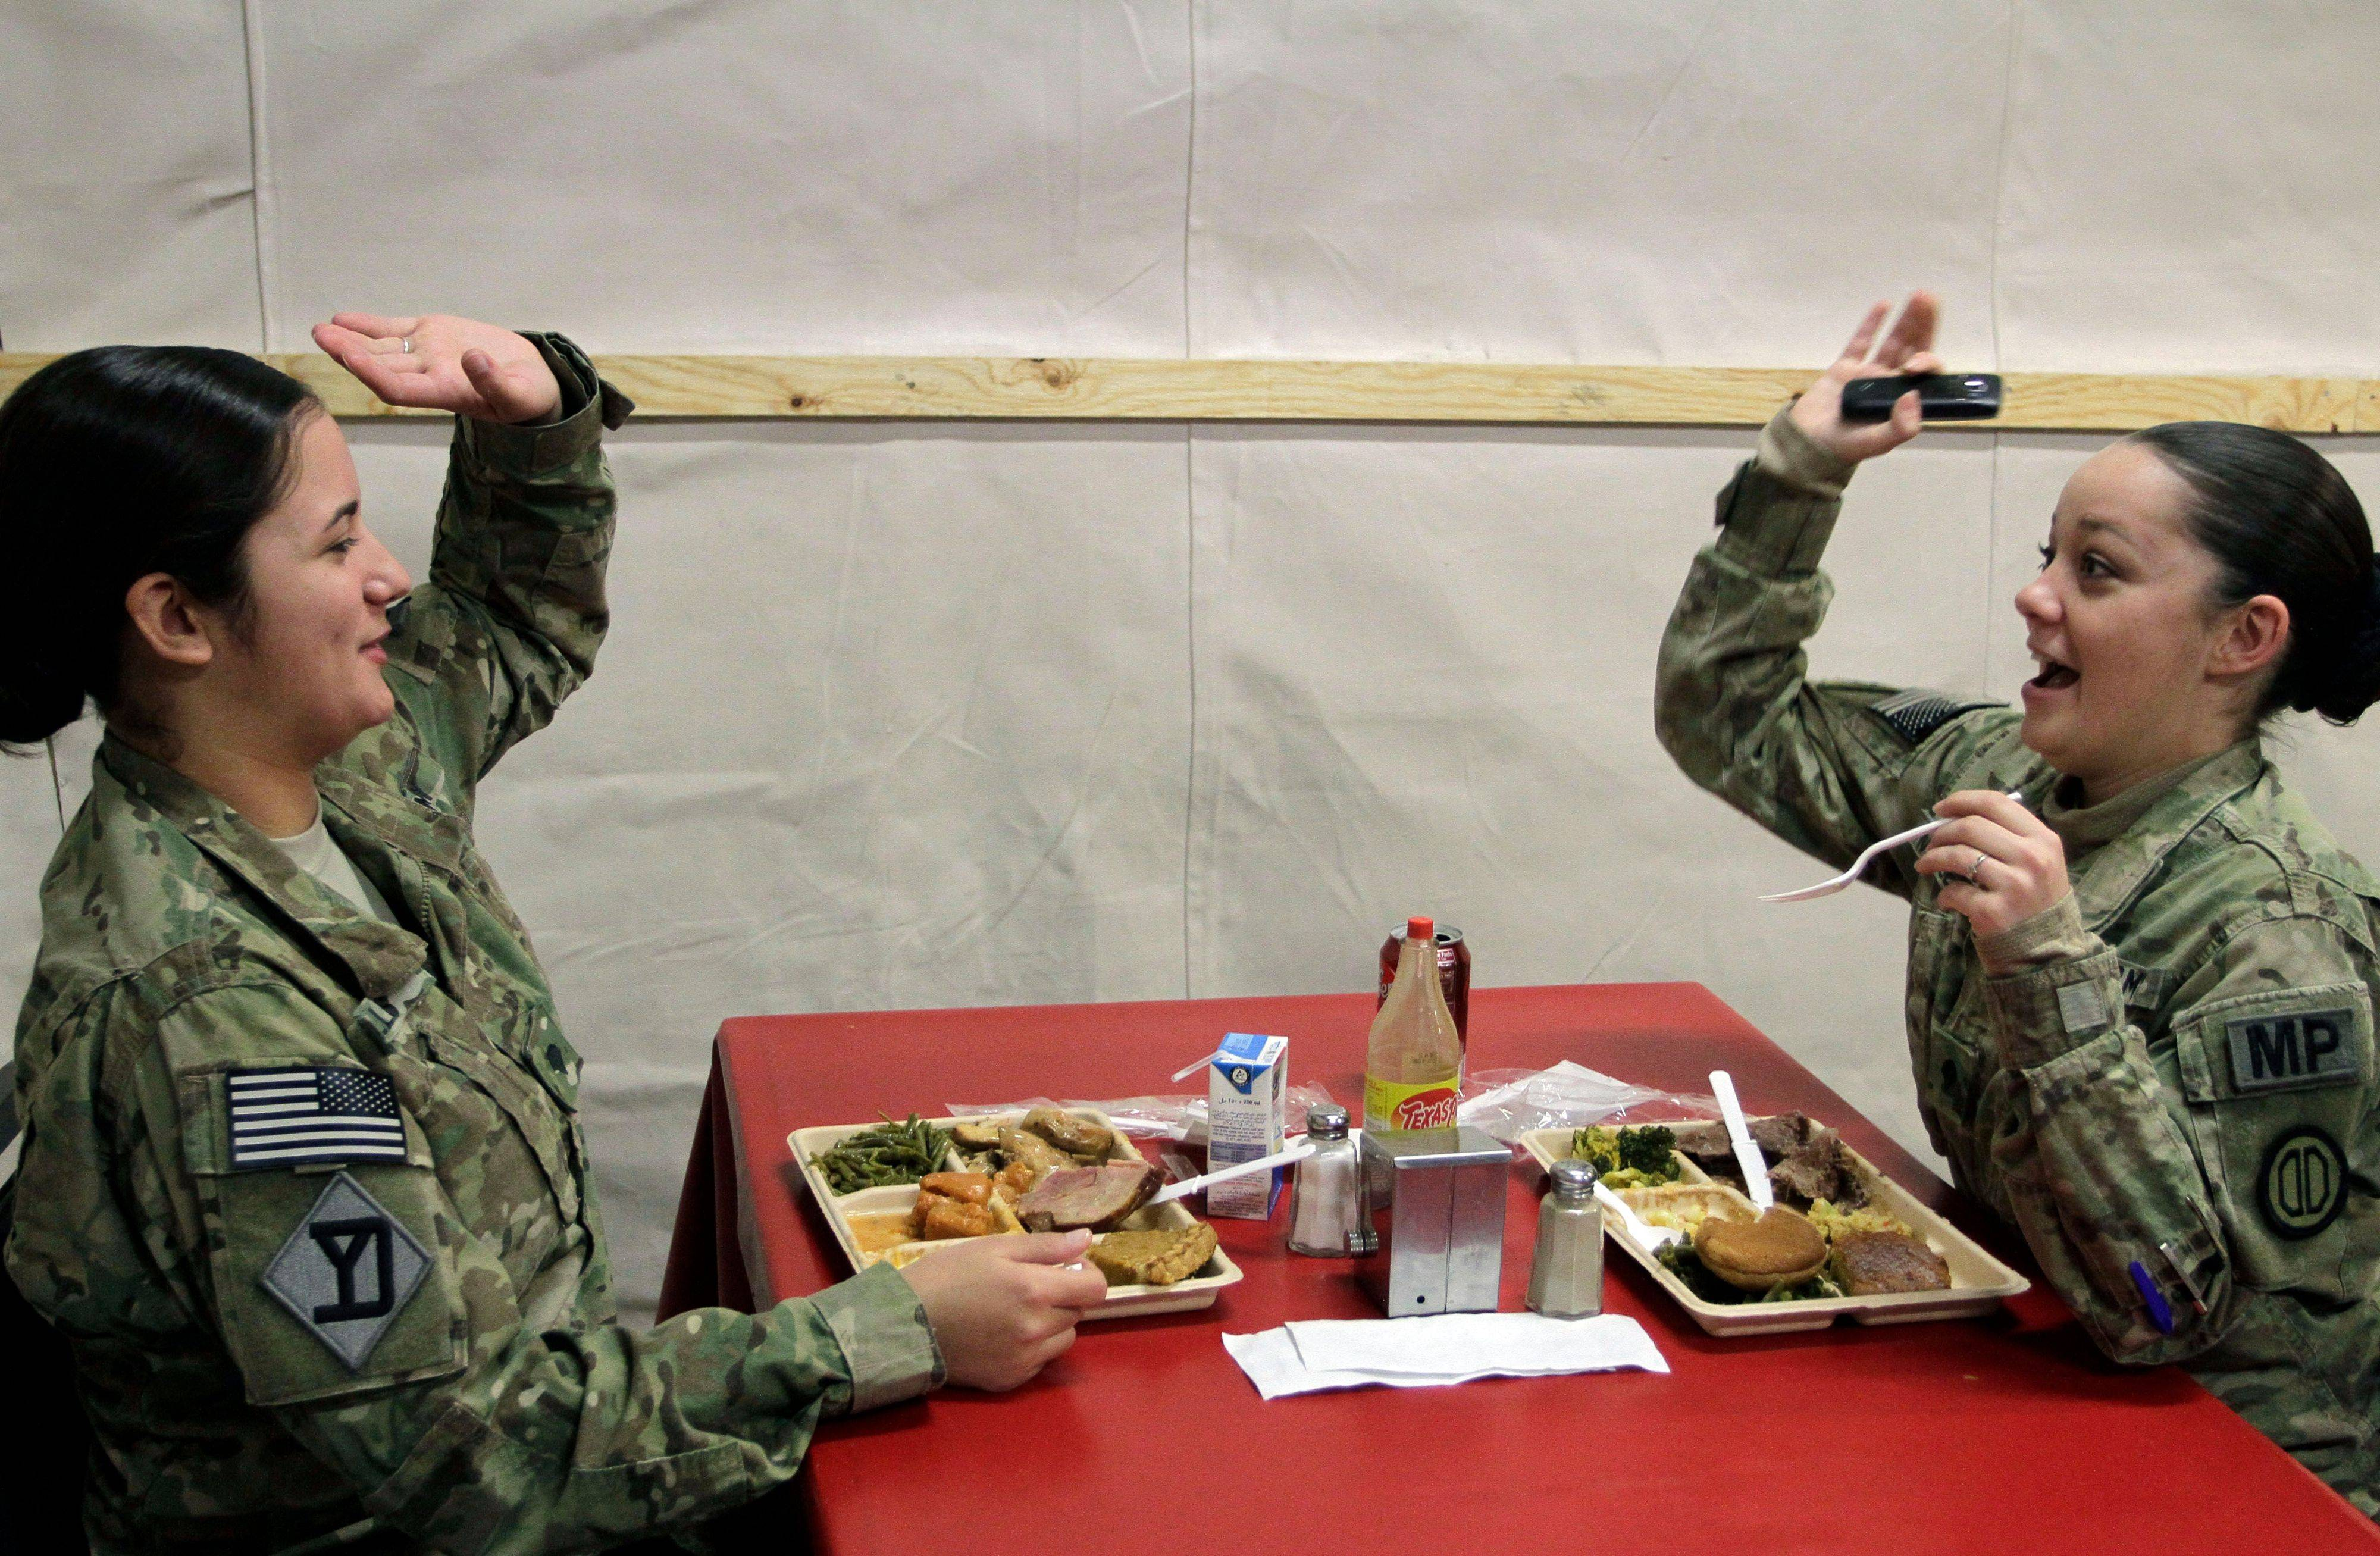 U.S. soldiers react, as they eat lunch meal to mark Thanksgiving Day at the U.S. base Camp Eggers in Kabul, Afghanistan, Thursday, Nov. 24, 2011.